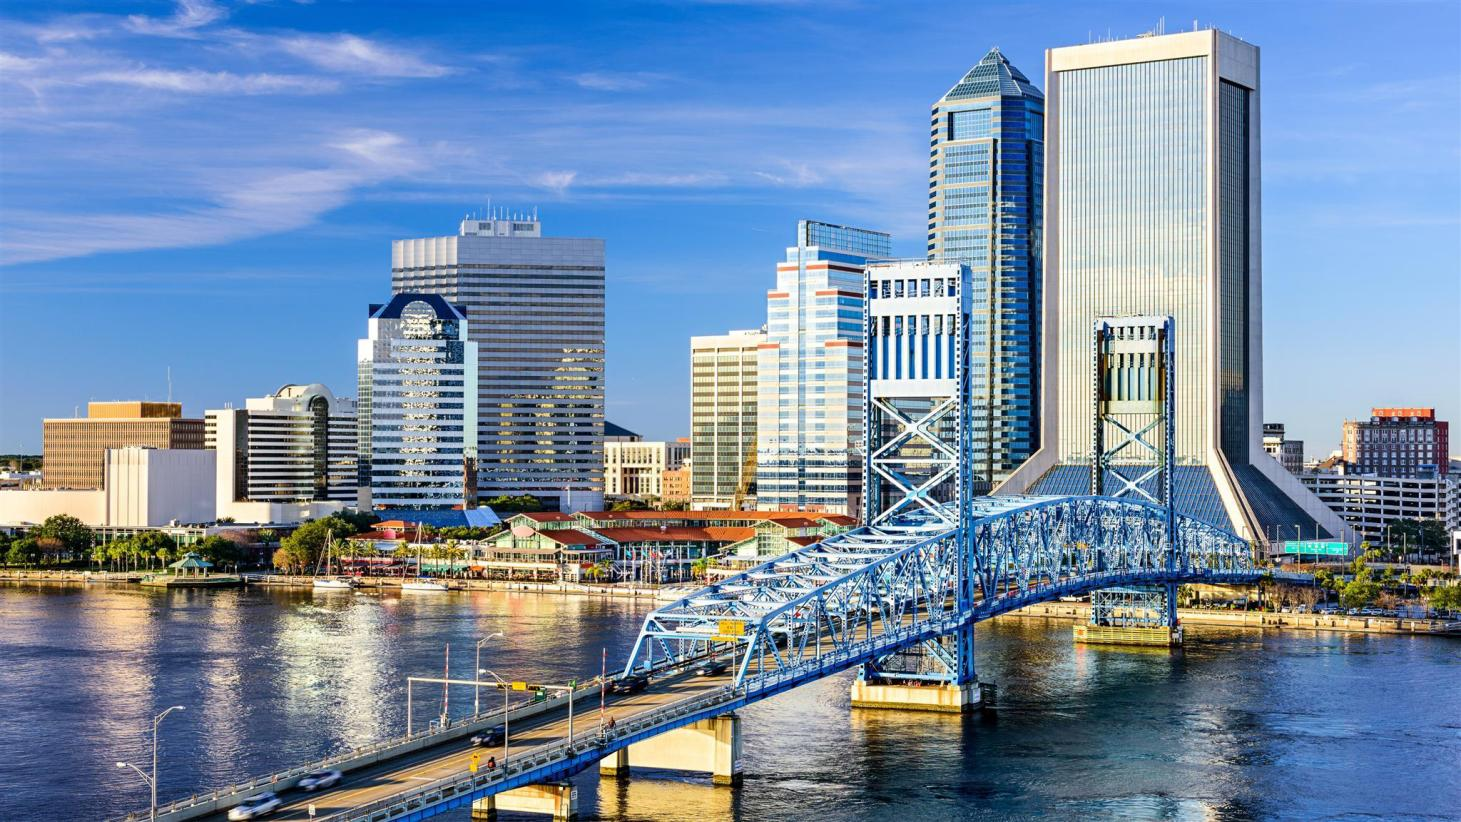 30 Best Jacksonville Fl Hotels Free Cancellation 2021 Price Lists Reviews Of The Best Hotels In Jacksonville Fl United States